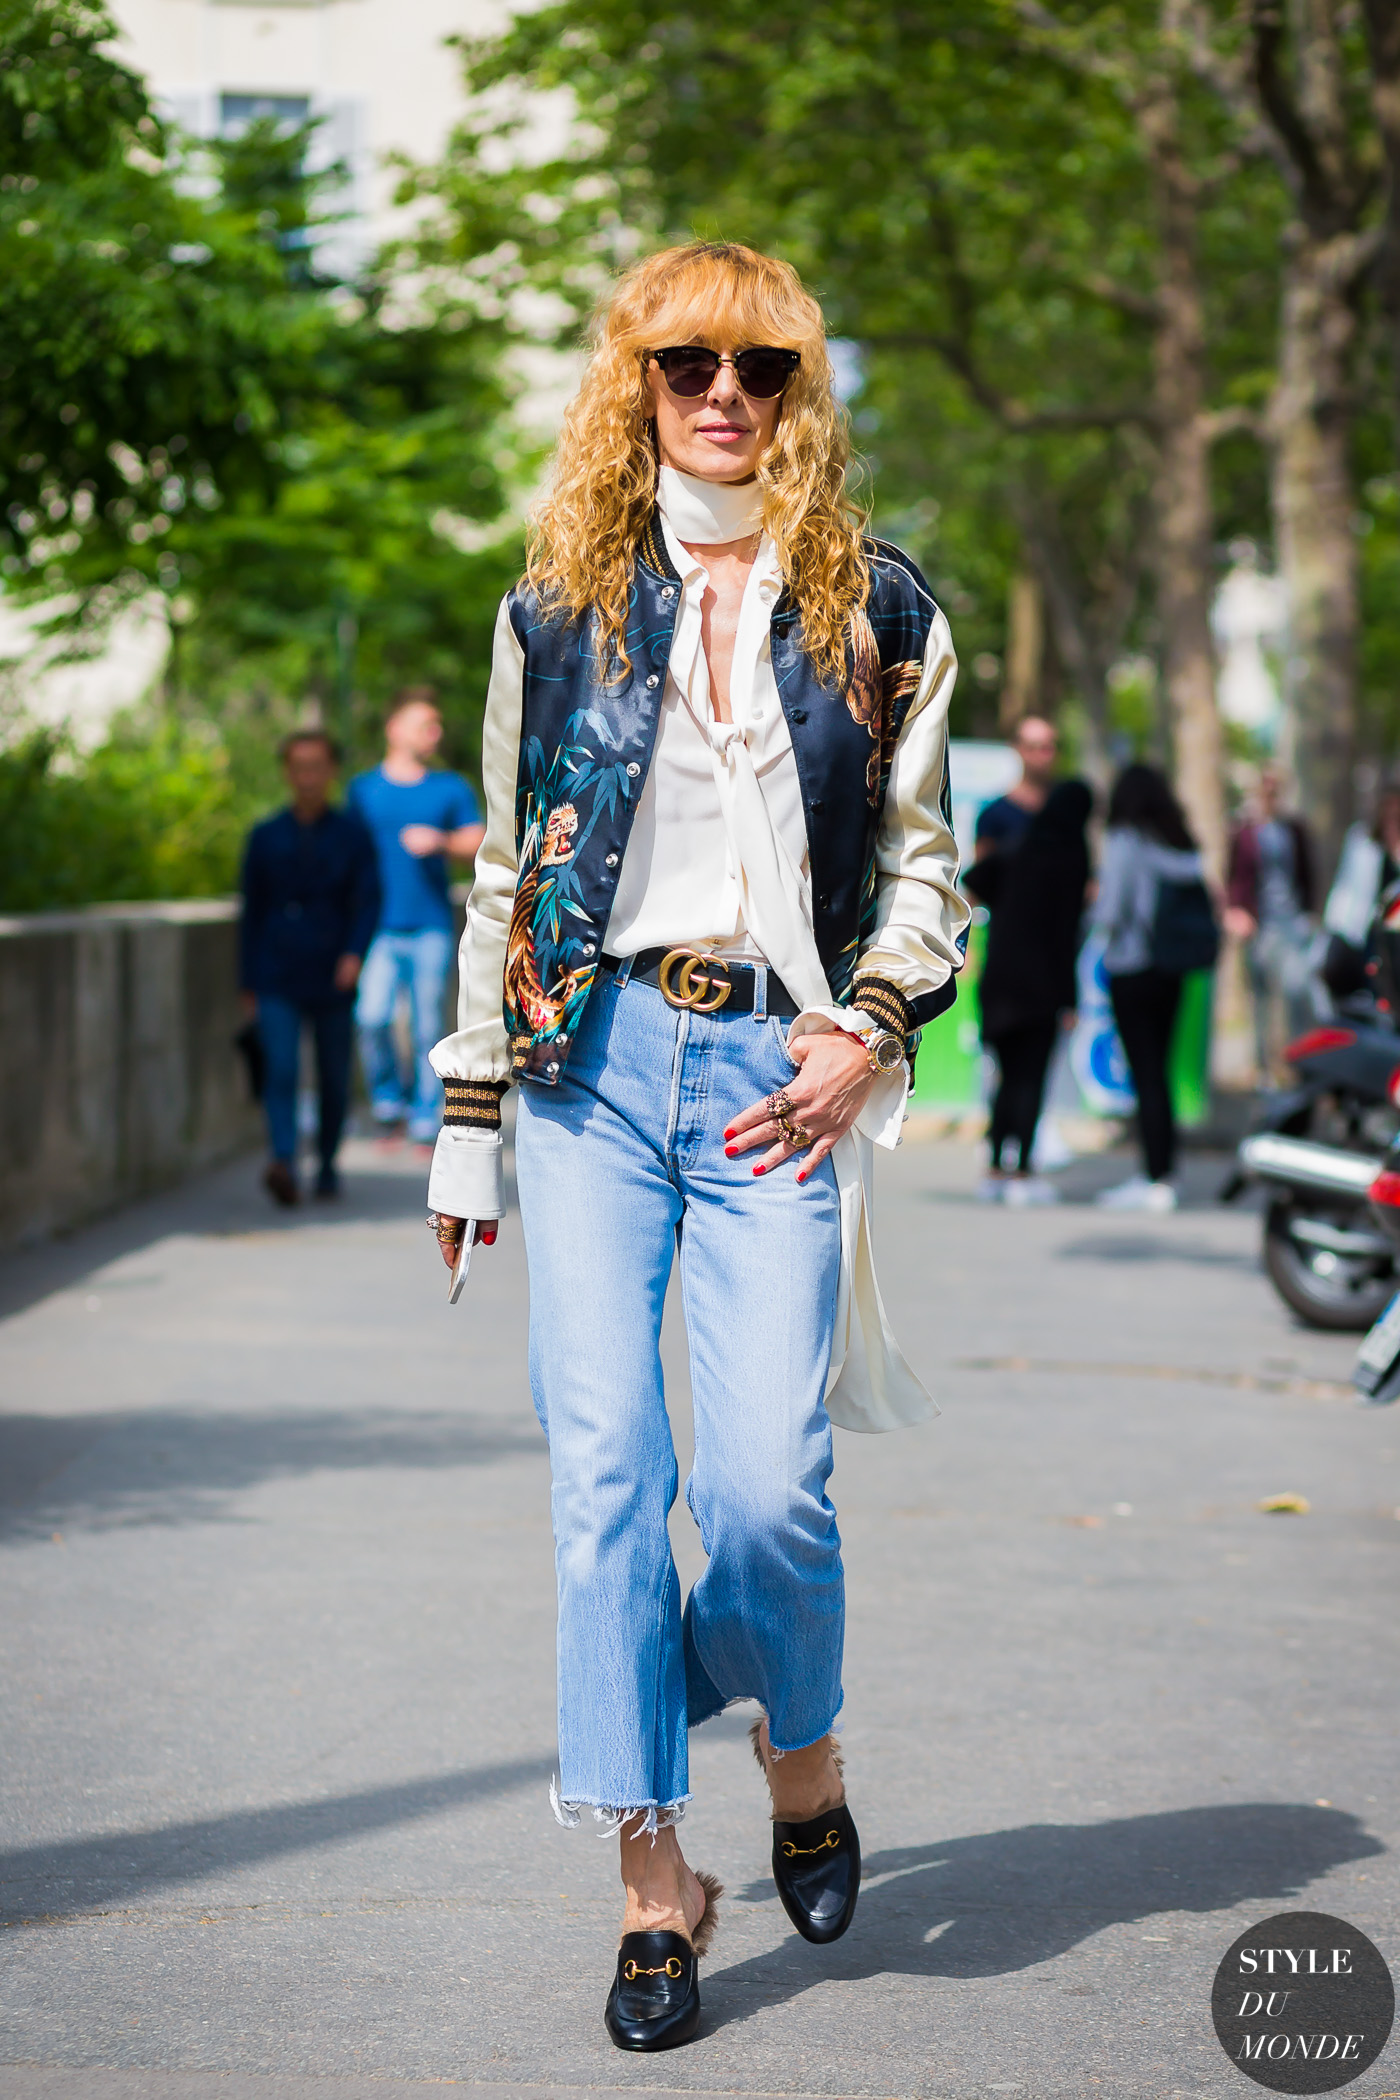 Elina Halimi Street Style Street Fashion Streetsnaps by STYLEDUMONDE Street Style Fashion Photography